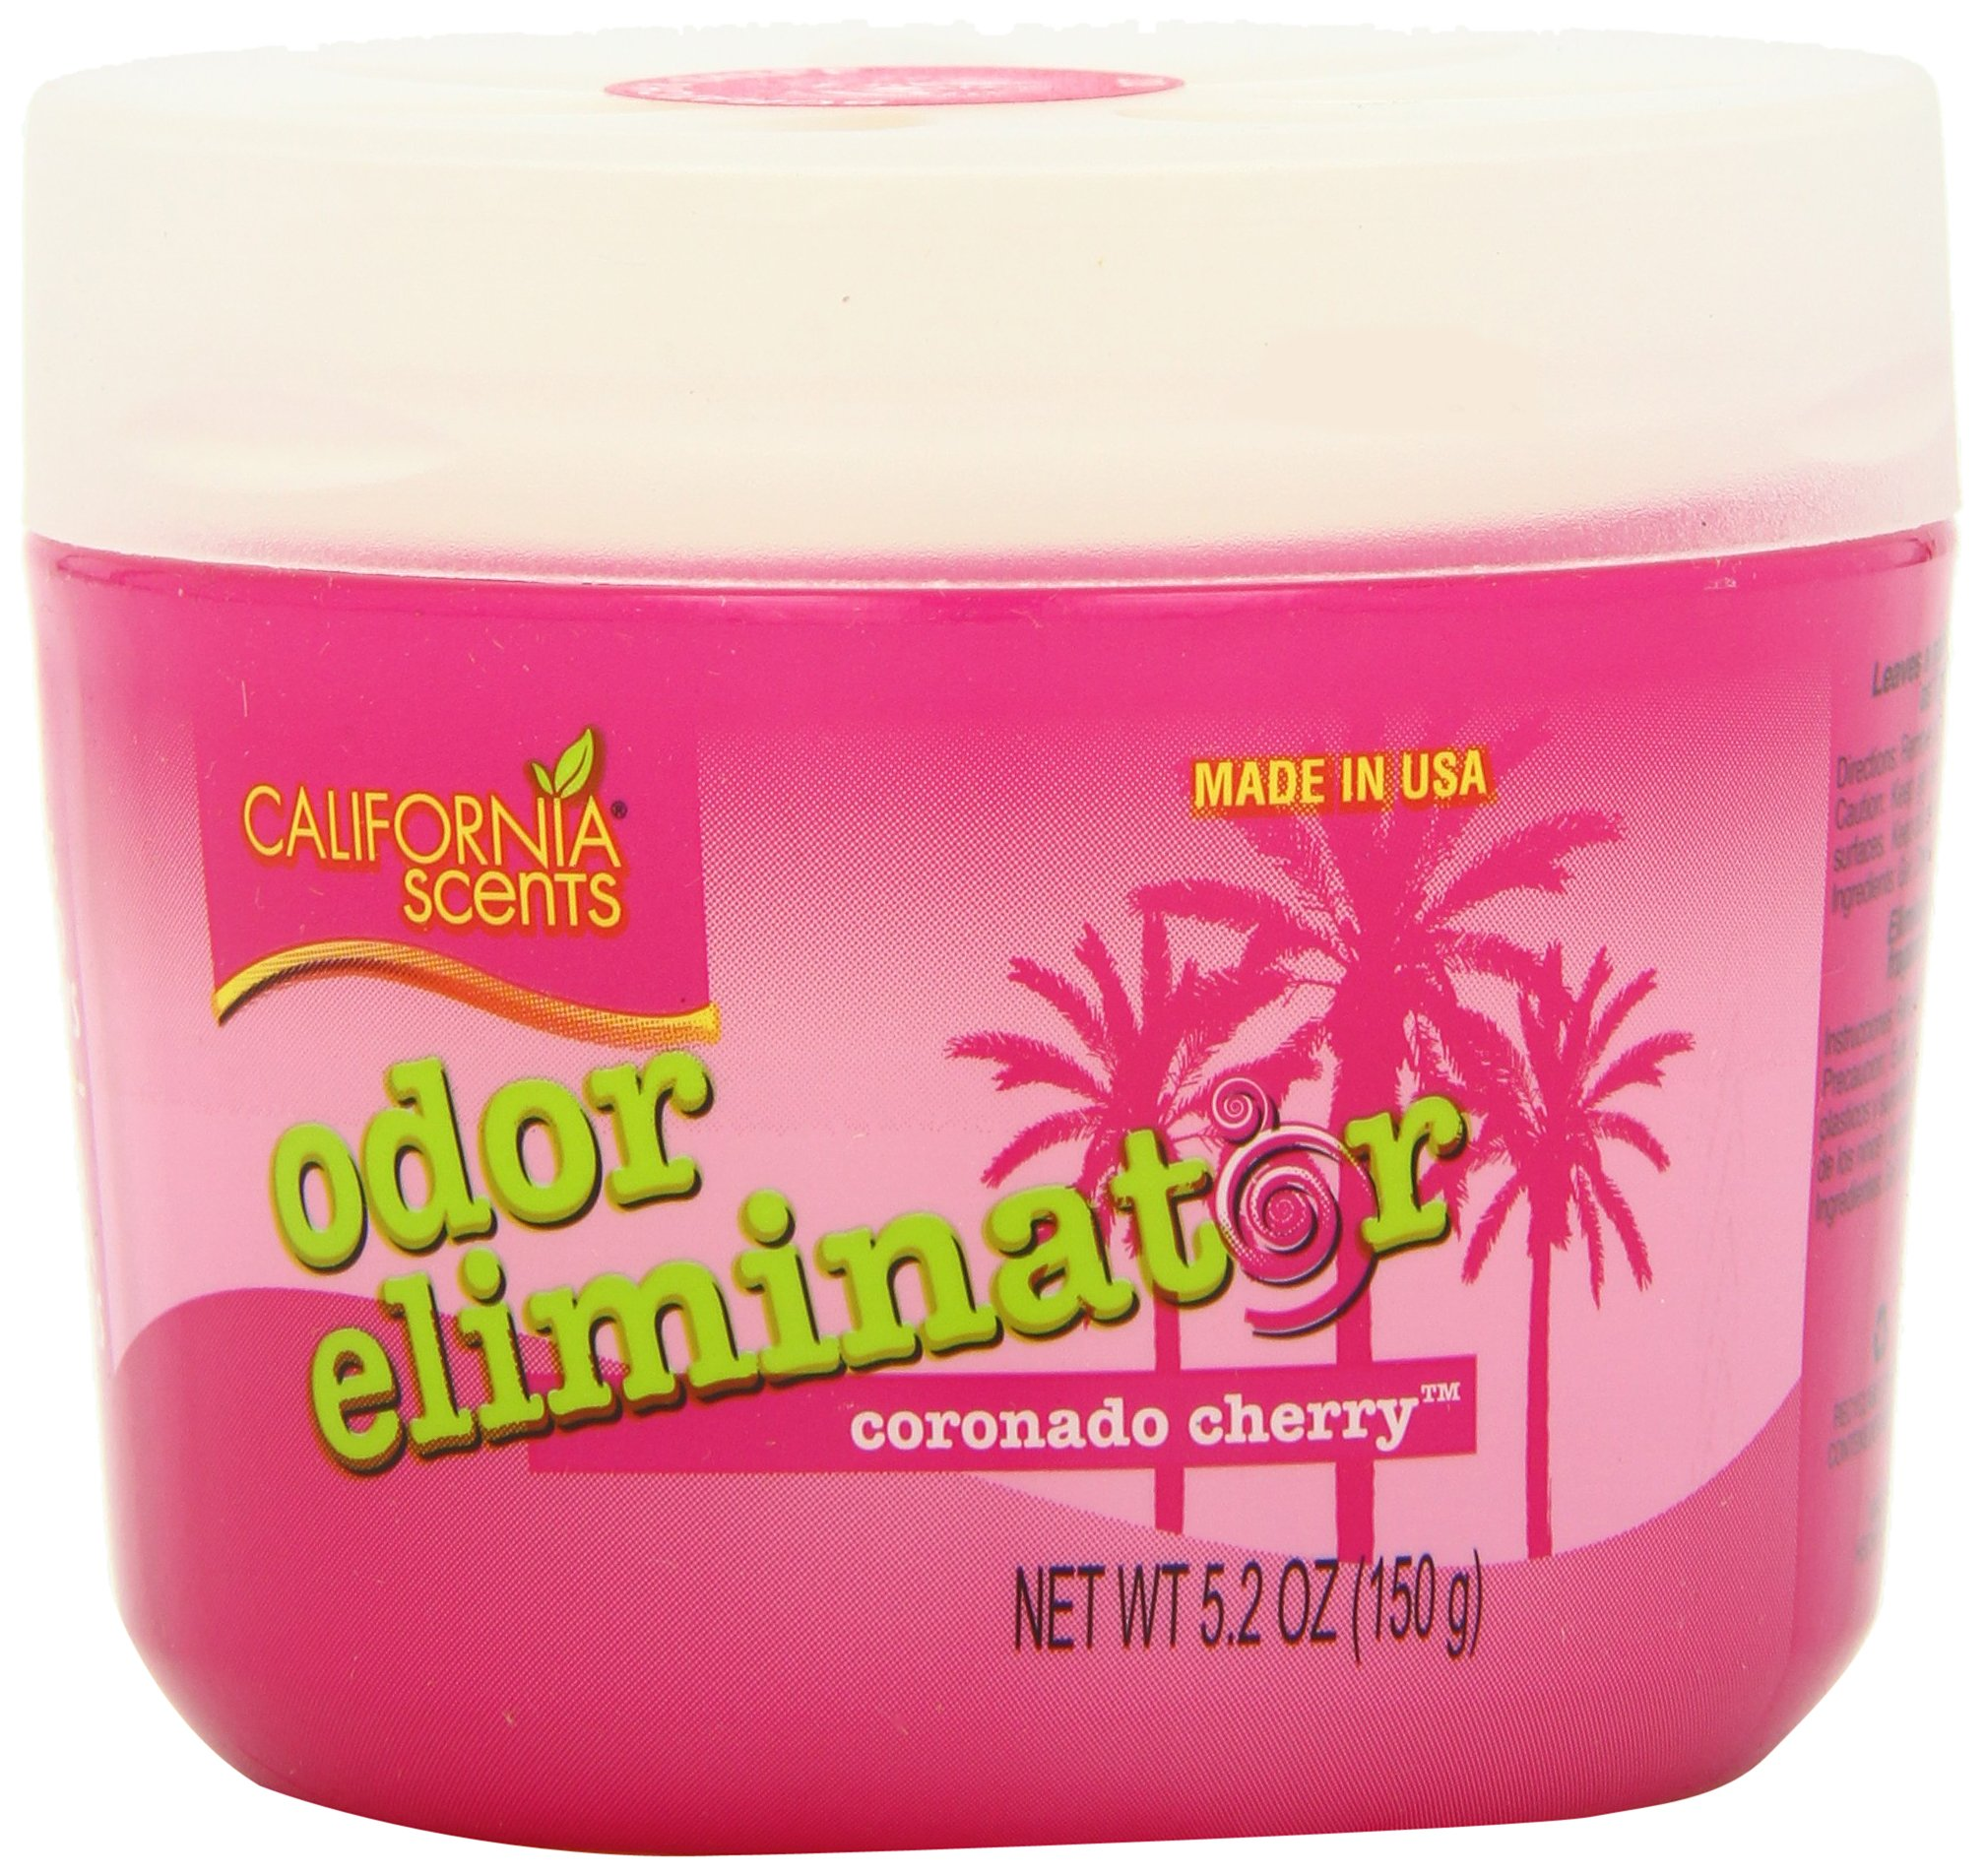 California Scents Odor Eliminator, Coronado Cherry, 5.2-Ounce Jars (Pack of 12) by California Scents (Image #2)